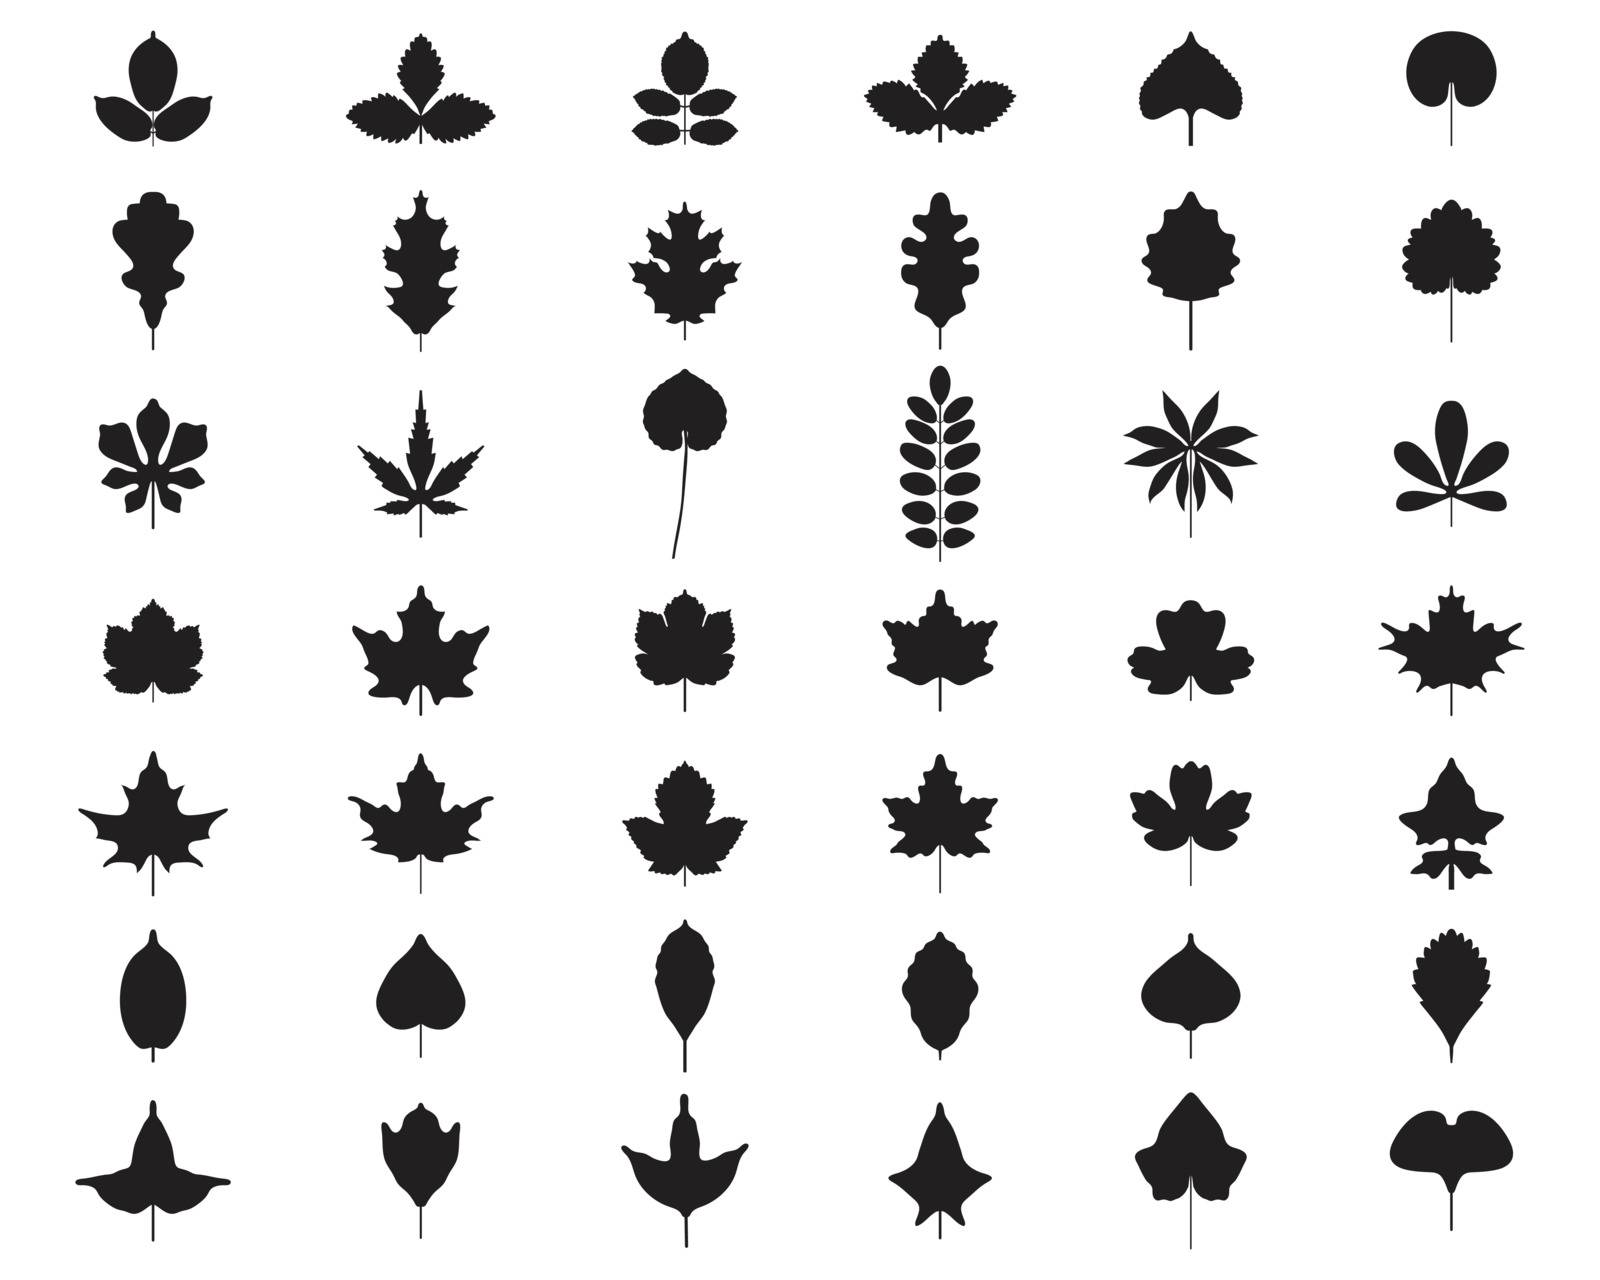 Black silhouettes of foliage on a white background